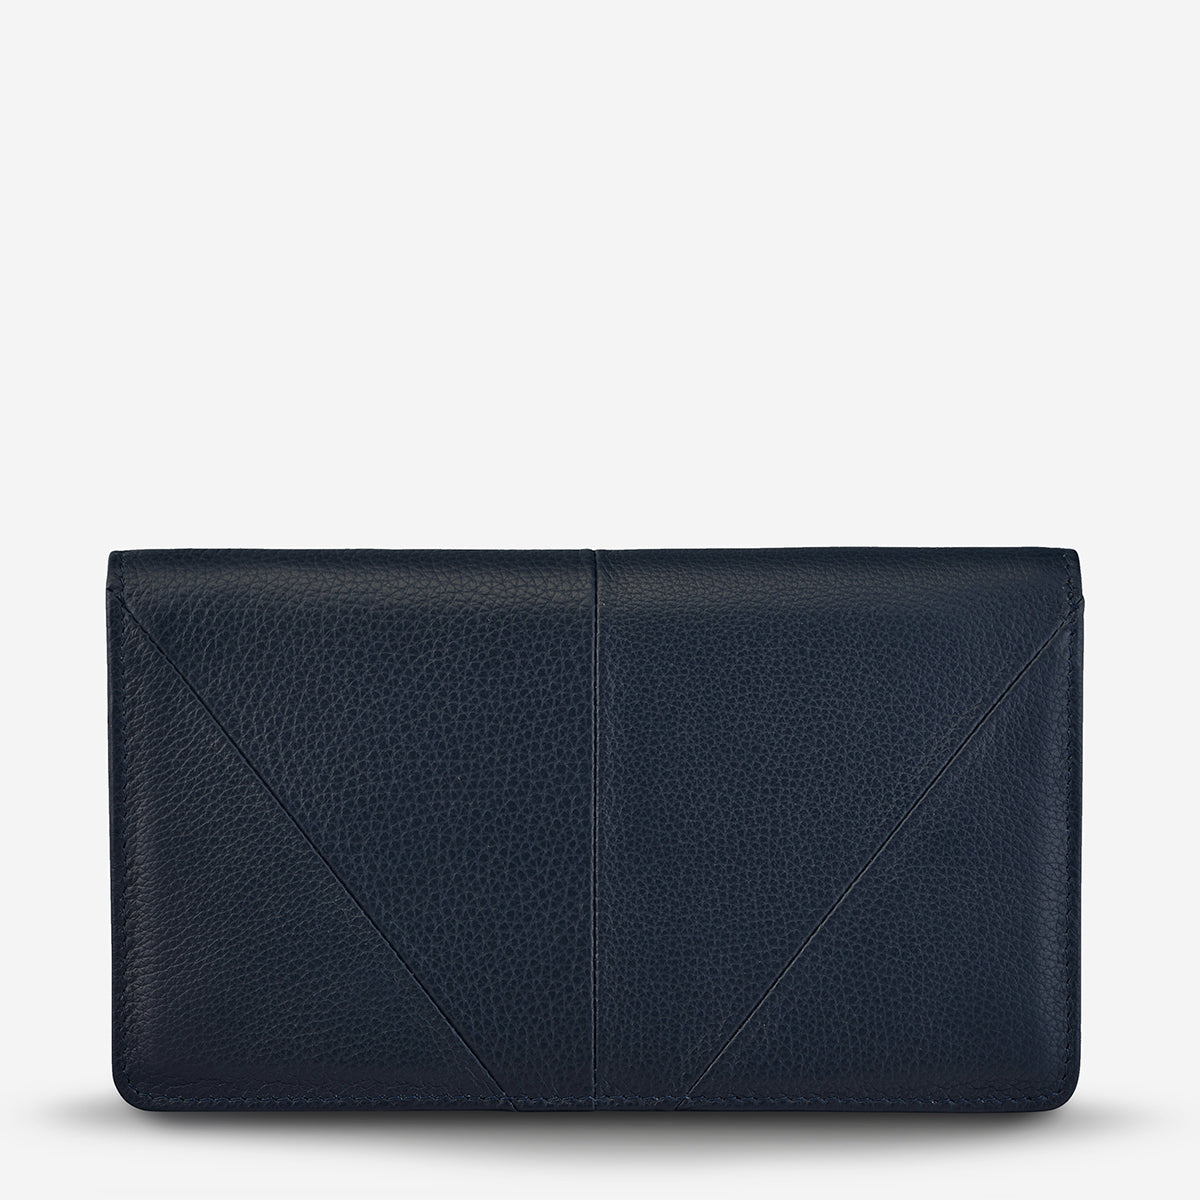 Status Anxiety Triple Threat Women's Leather Wallet Navy